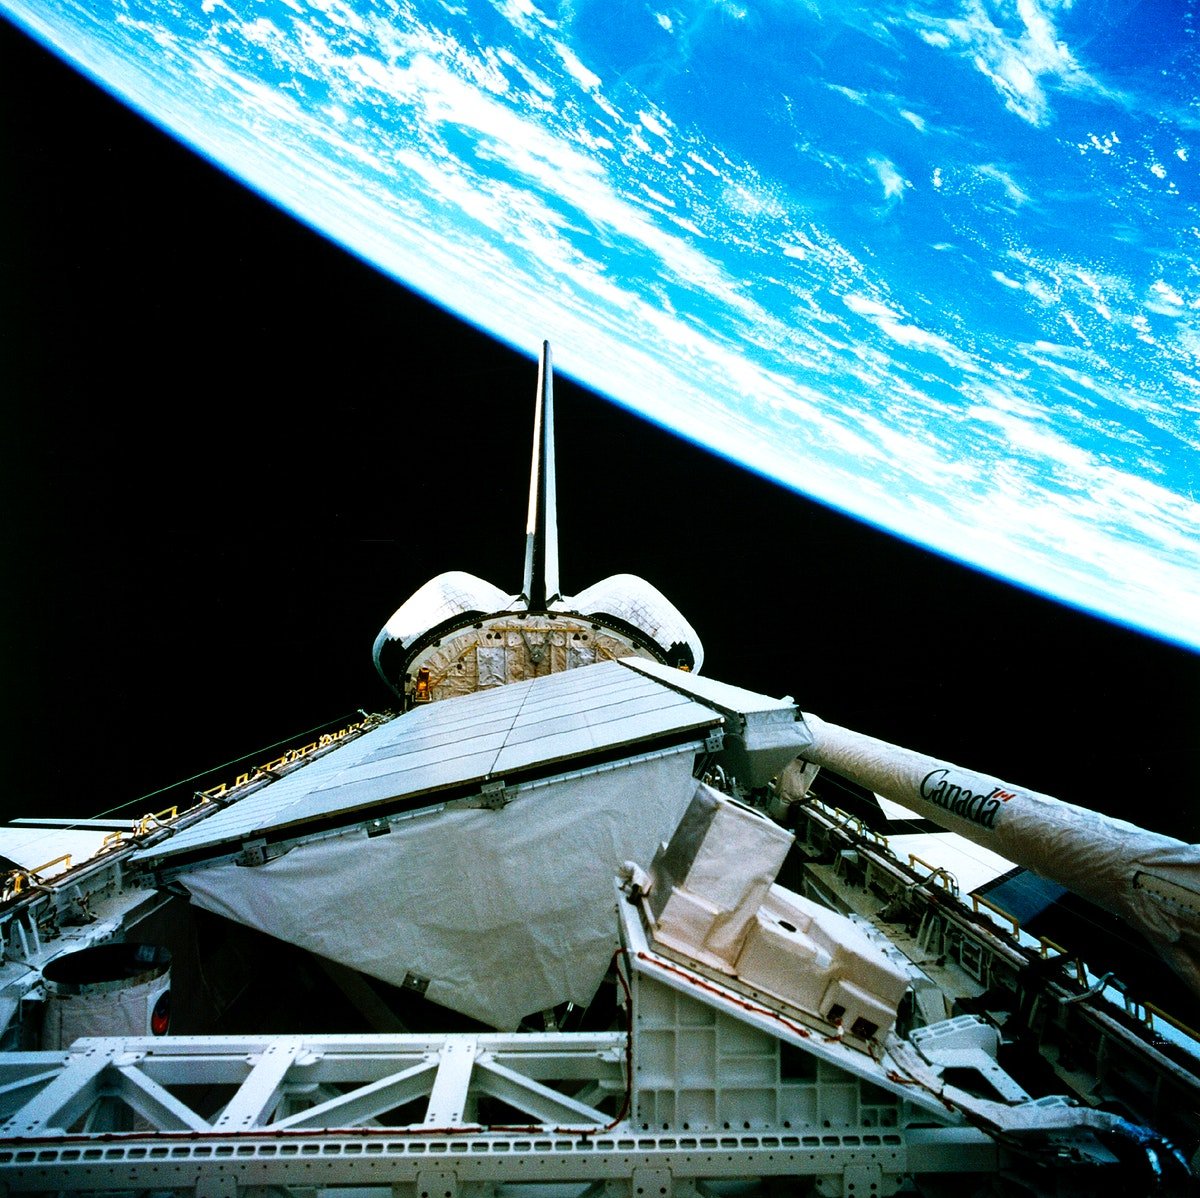 The payload bay of the orbiting space shuttle Endeavour with an area of the Pacific Ocean northeast of Hawaii in the…